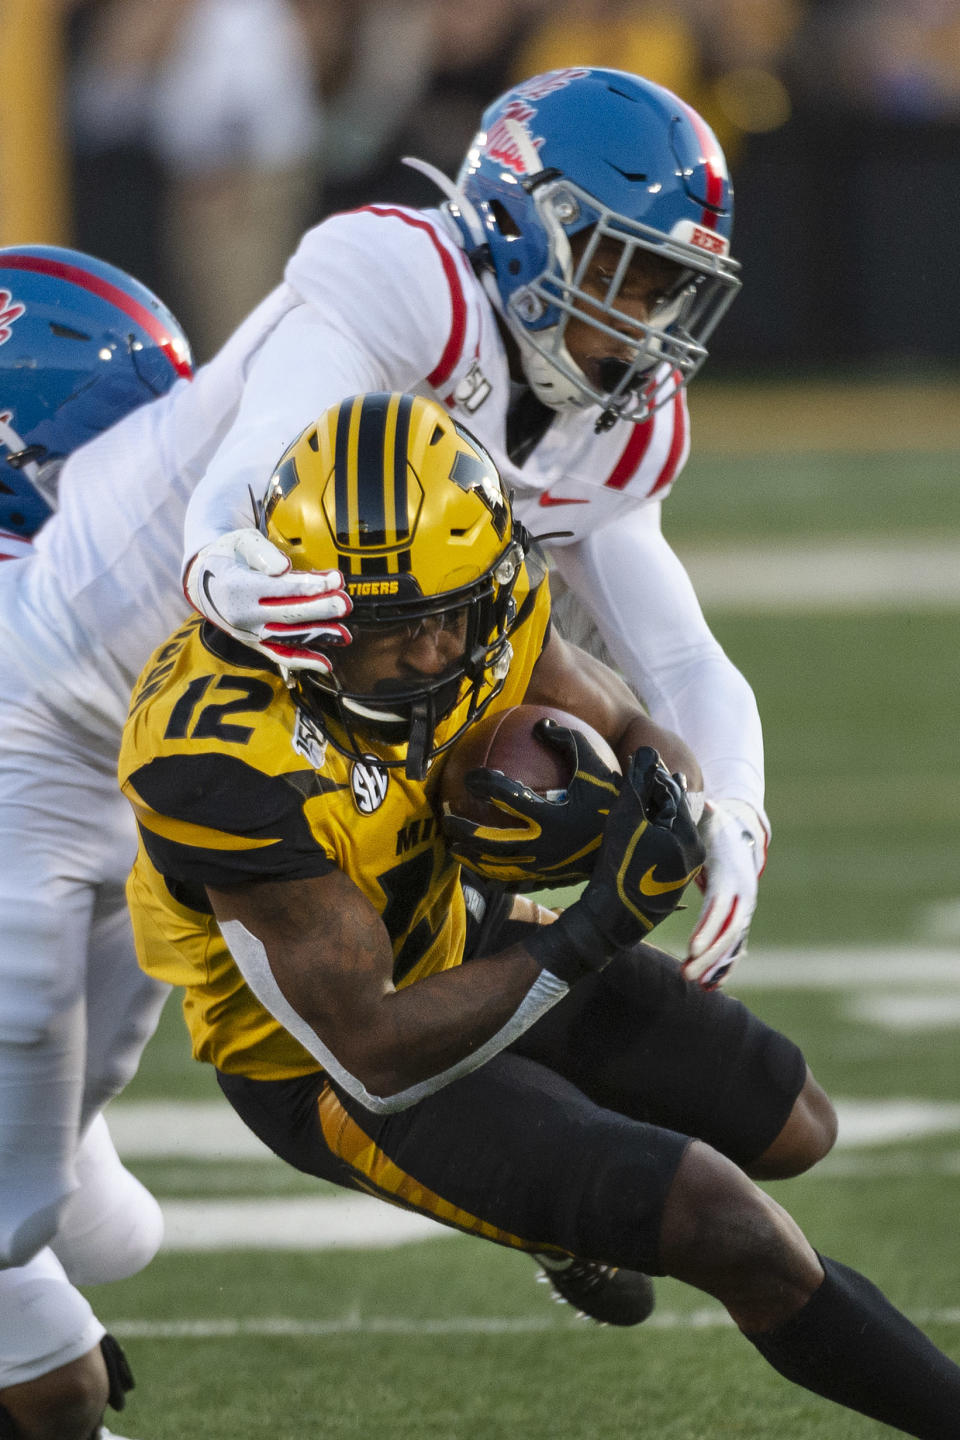 Missouri wide receiver Johnathon Johnson, bottom, is tackled by Mississippi defensive back Jon Haynes, top, during the first quarter of an NCAA college football game Saturday, Oct. 12, 2019, in Columbia, Mo. (AP Photo/L.G. Patterson)